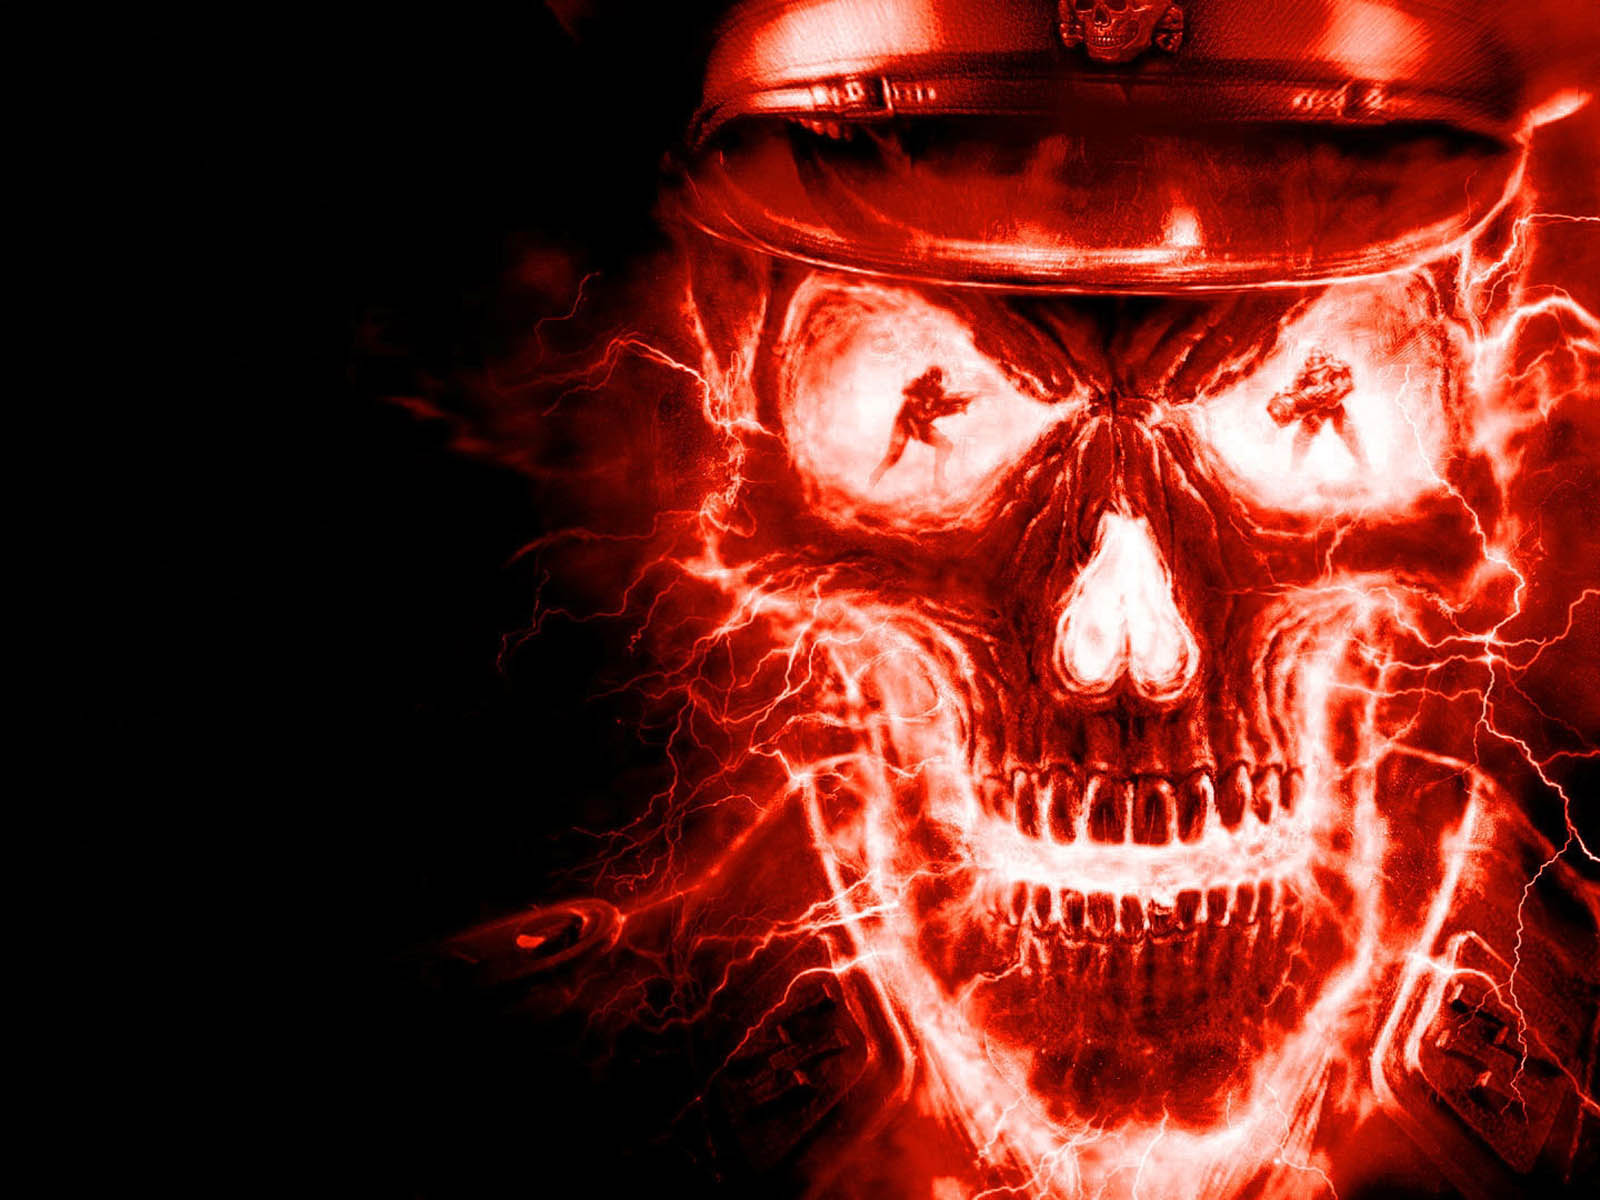 Wallpapers Skull Wallpapers HD Wallpapers Download Free Images Wallpaper [1000image.com]